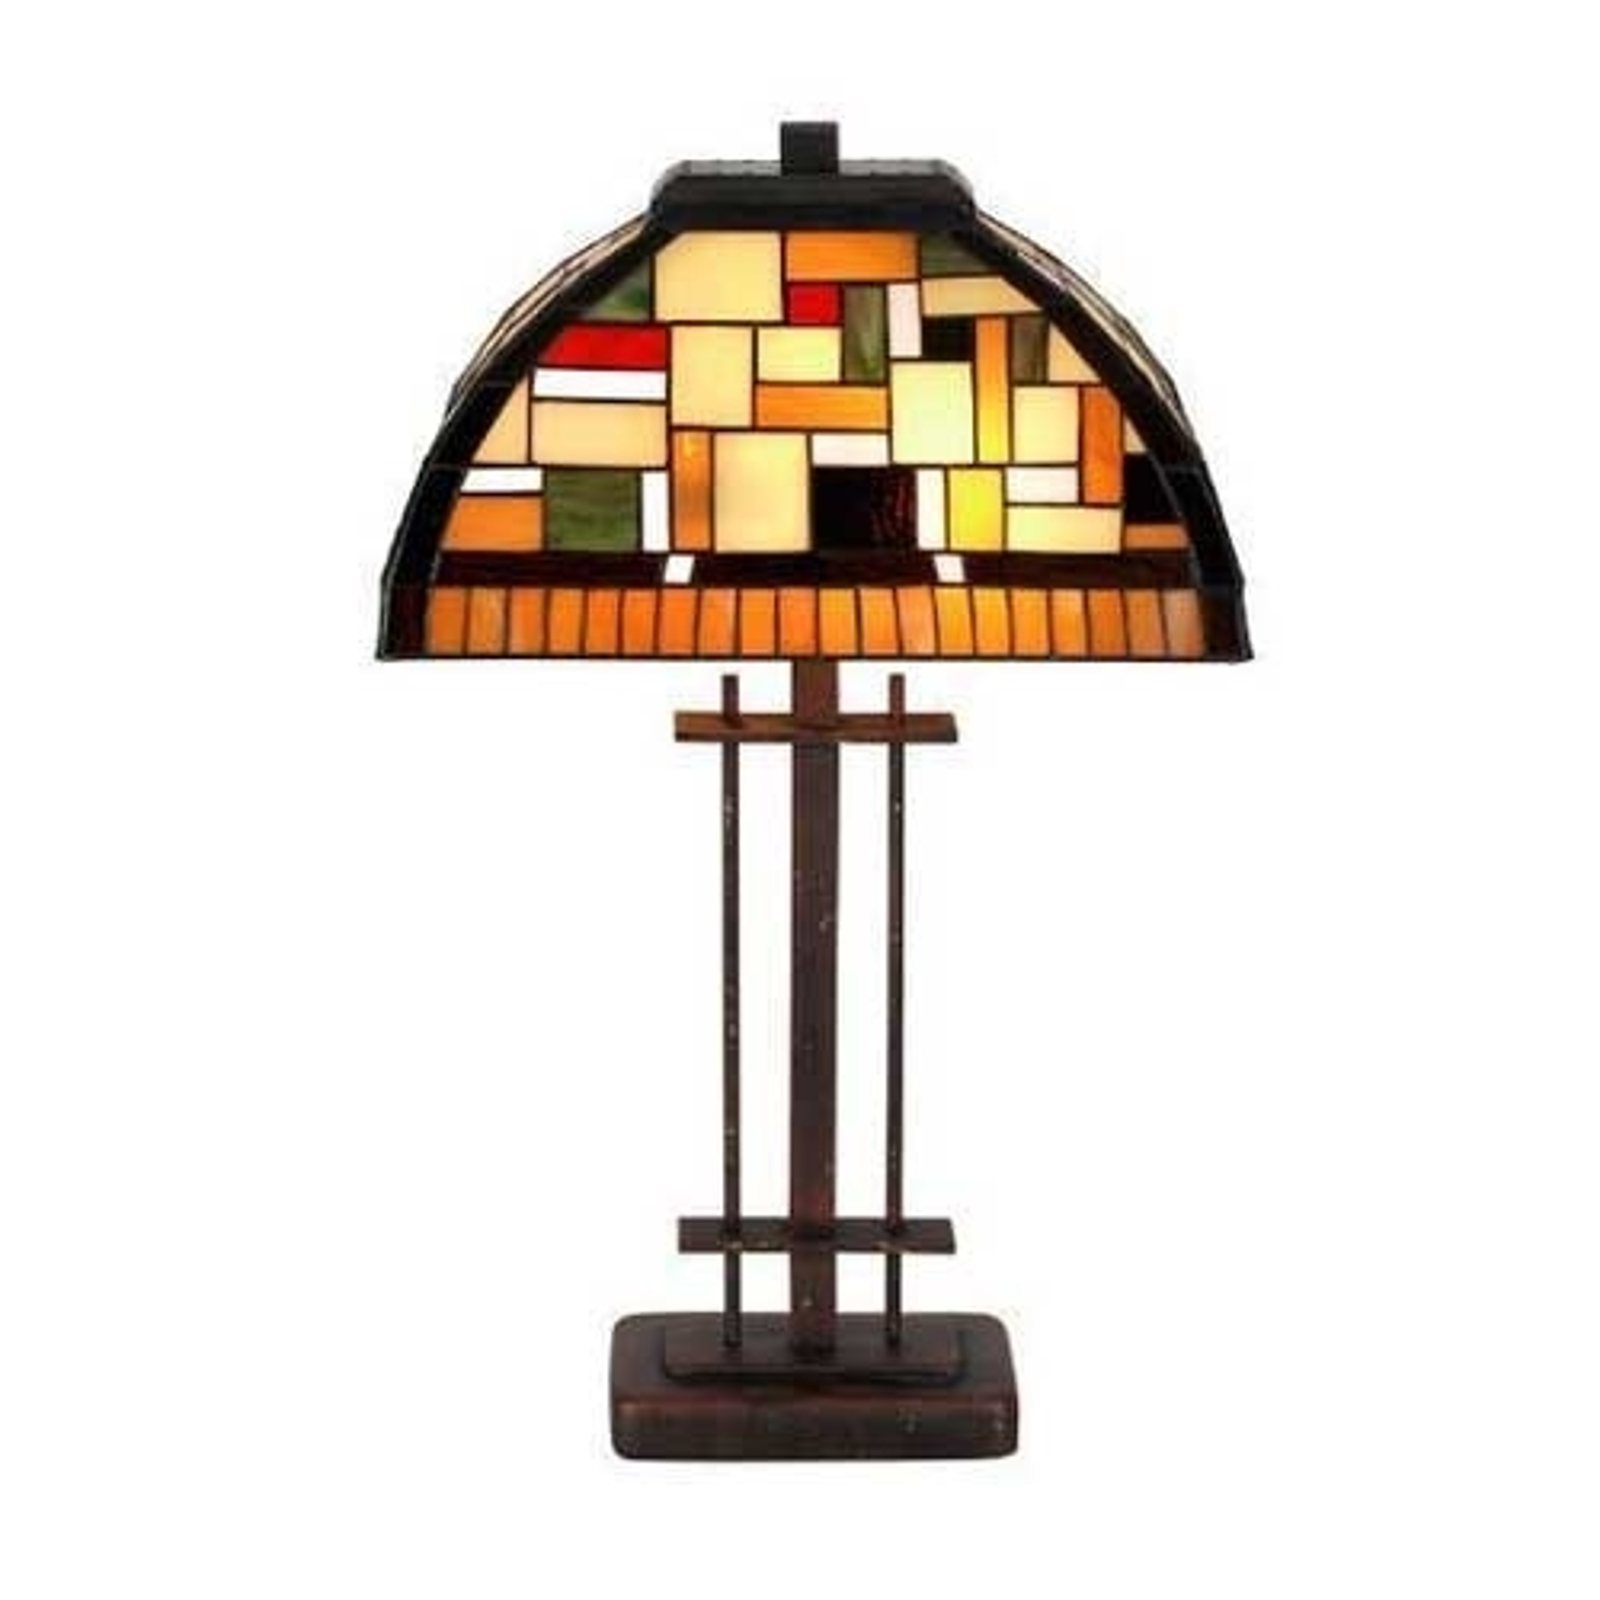 MOSAICA - table lamp in Tiffany style_1032204_1